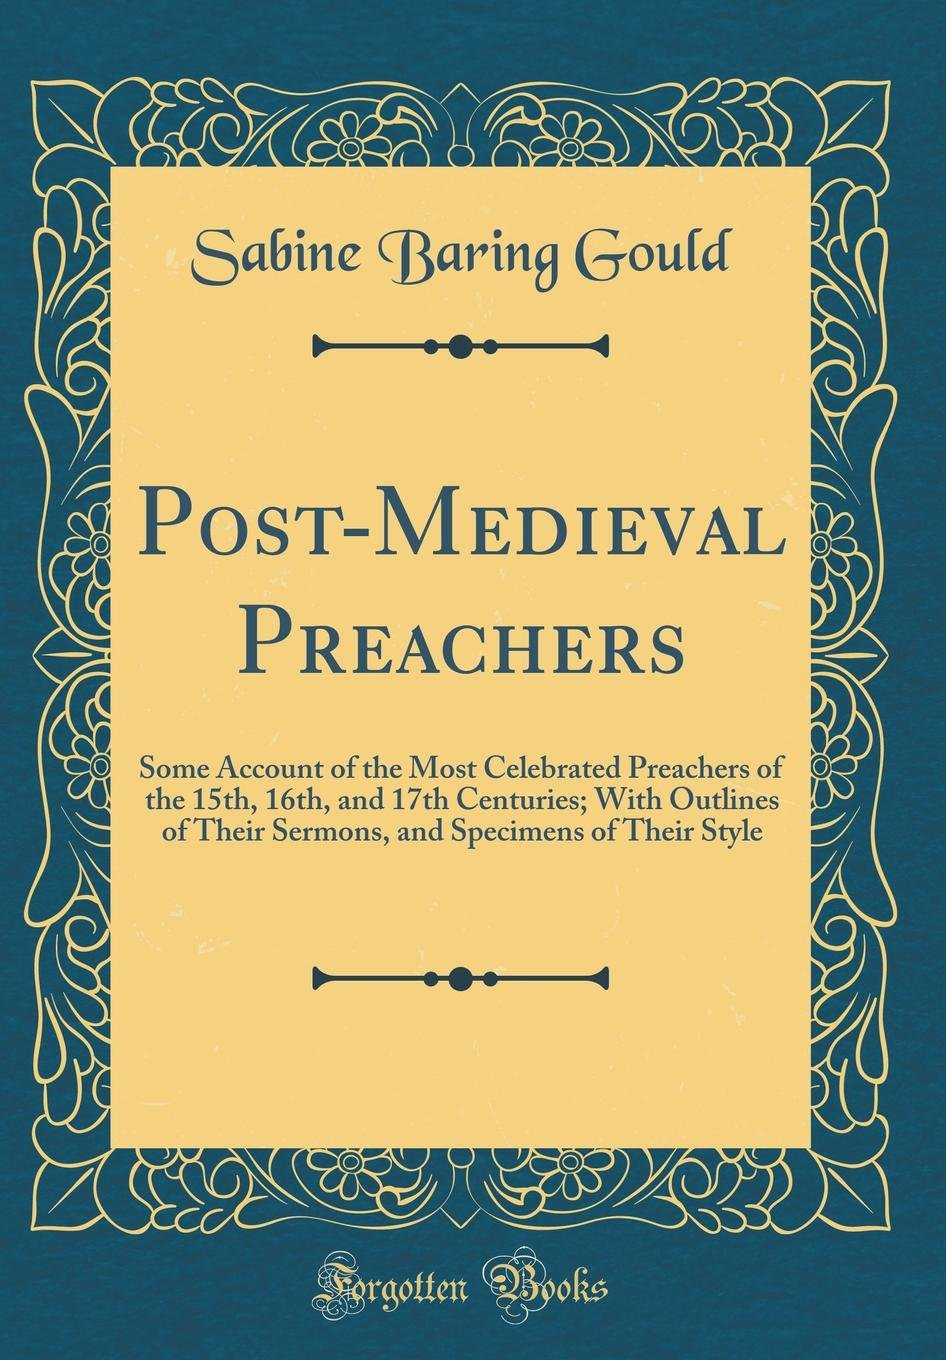 Download Post-Medieval Preachers: Some Account of the Most Celebrated Preachers of the 15th, 16th, and 17th Centuries; With Outlines of Their Sermons, and Specimens of Their Style (Classic Reprint) PDF